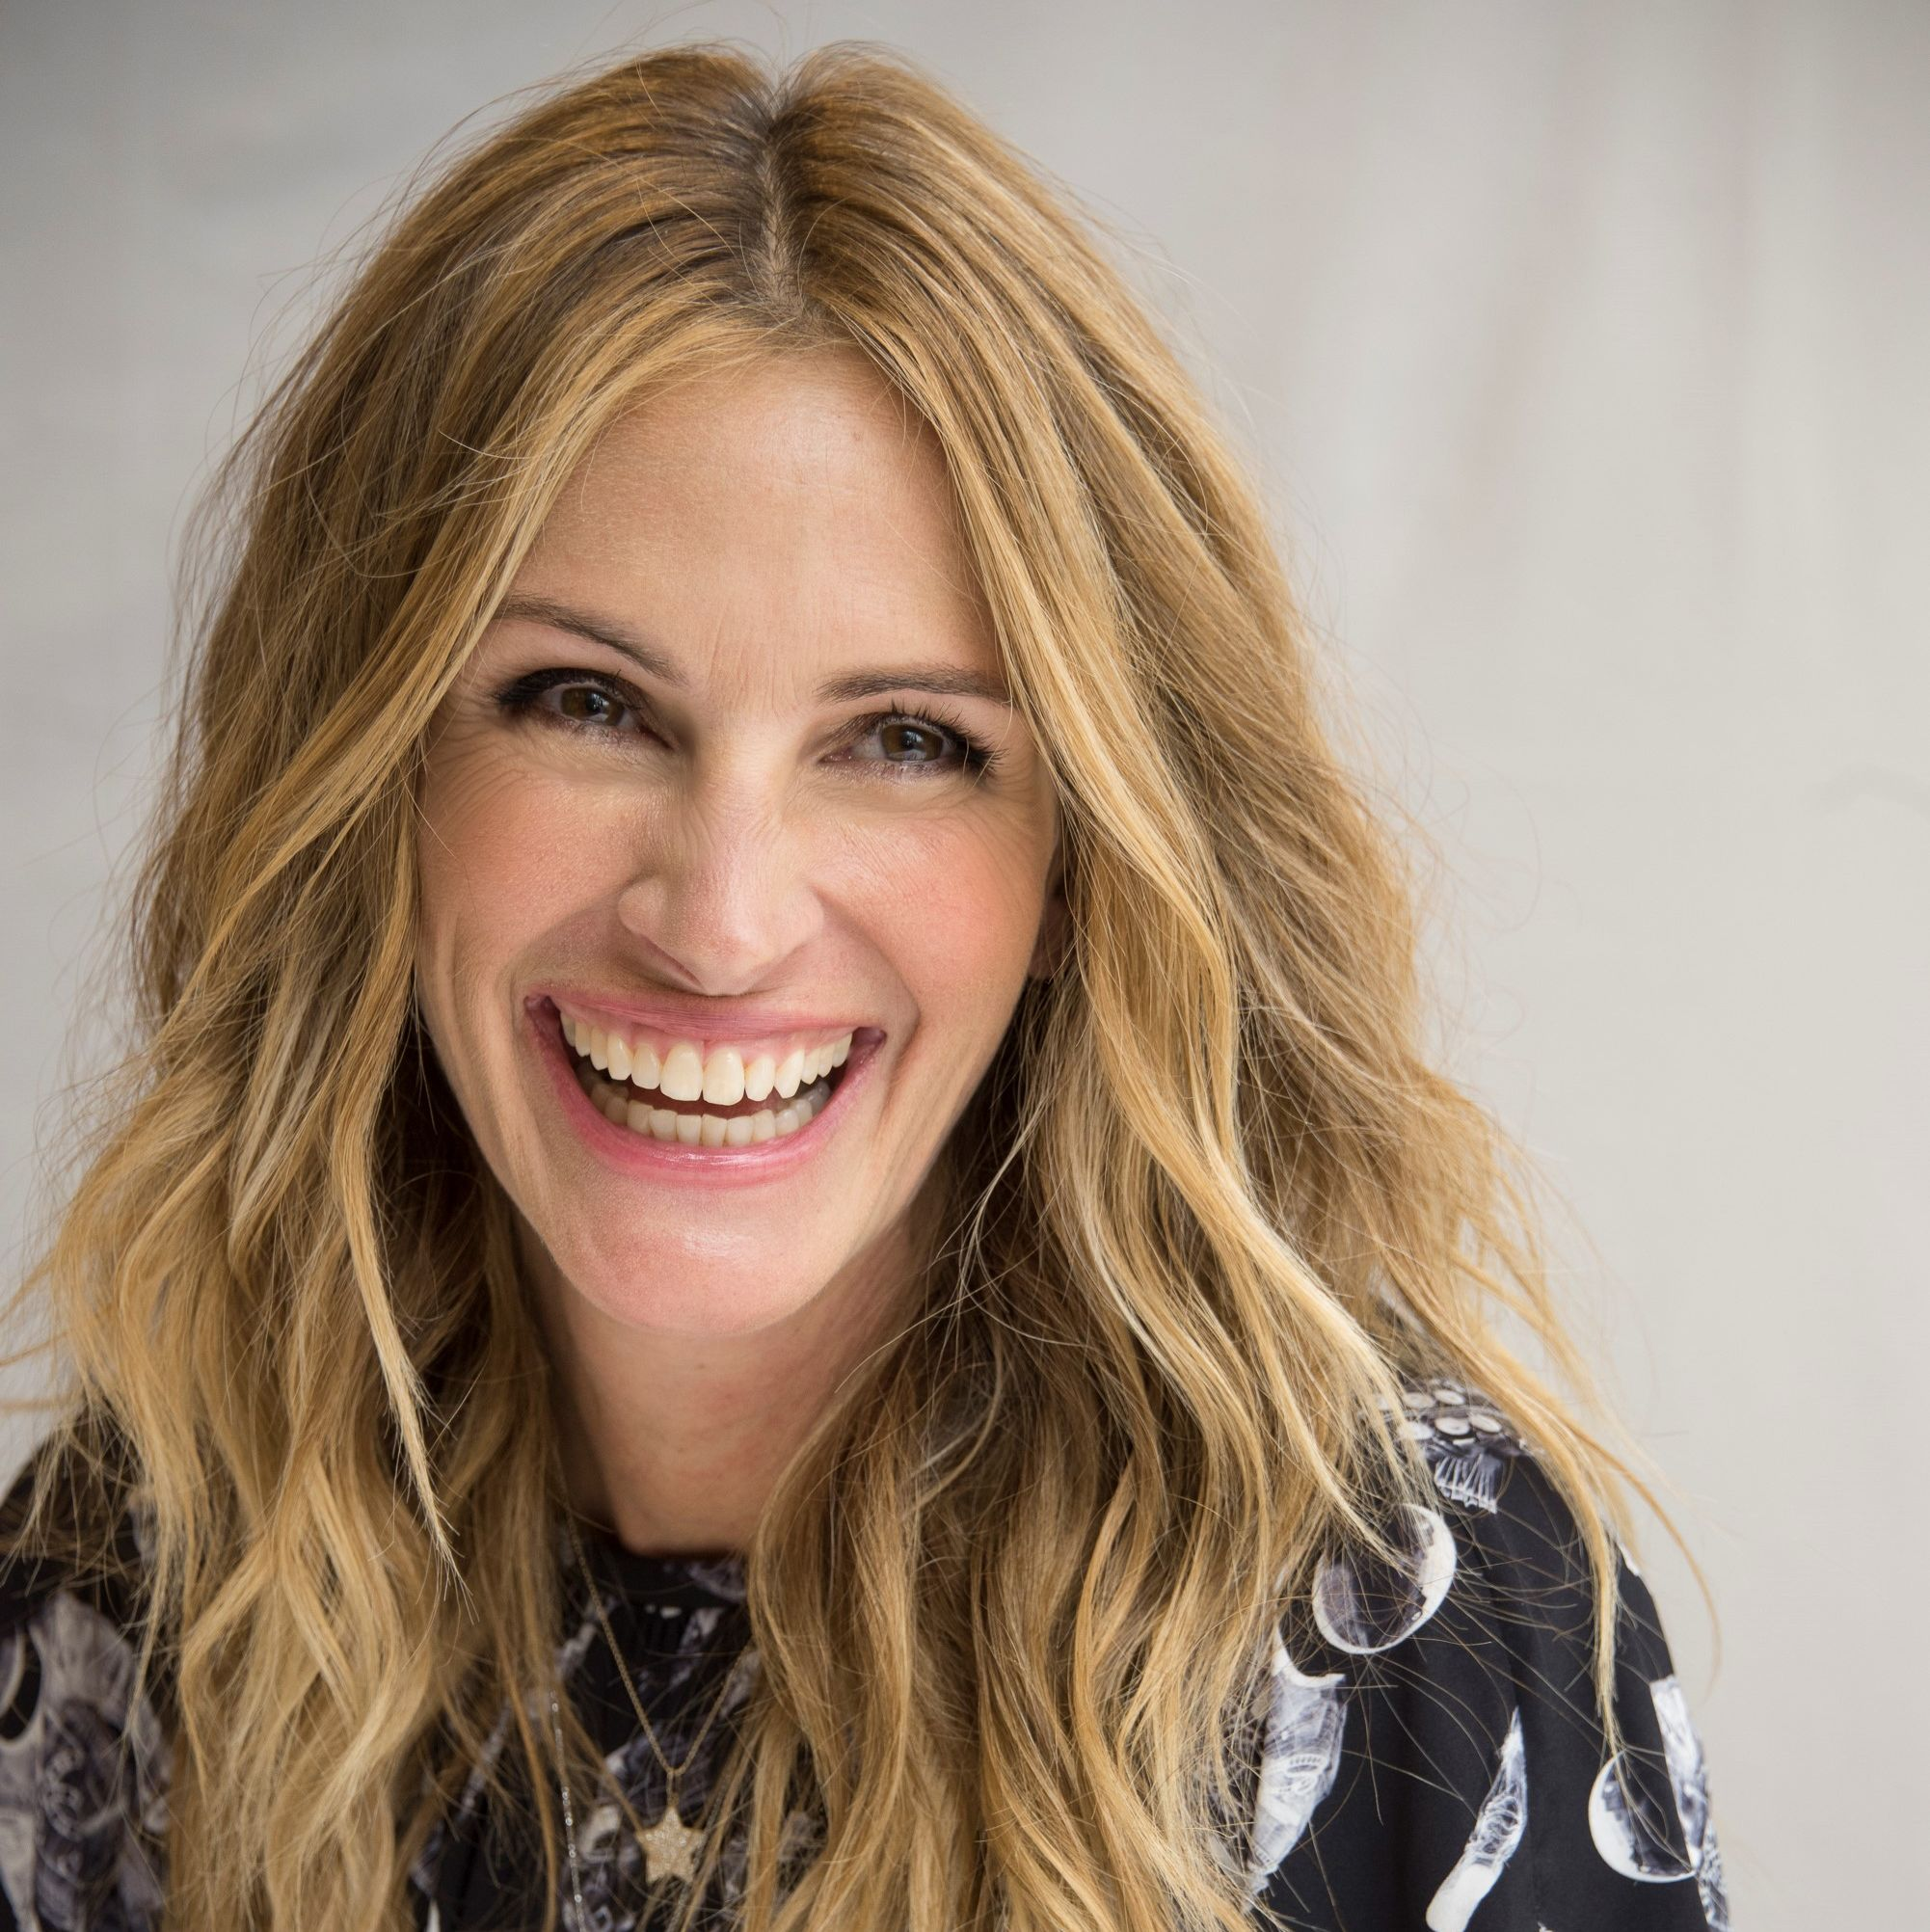 Julia Roberts' New Tousled Lob is the Shortest Cut She's Worn in Years